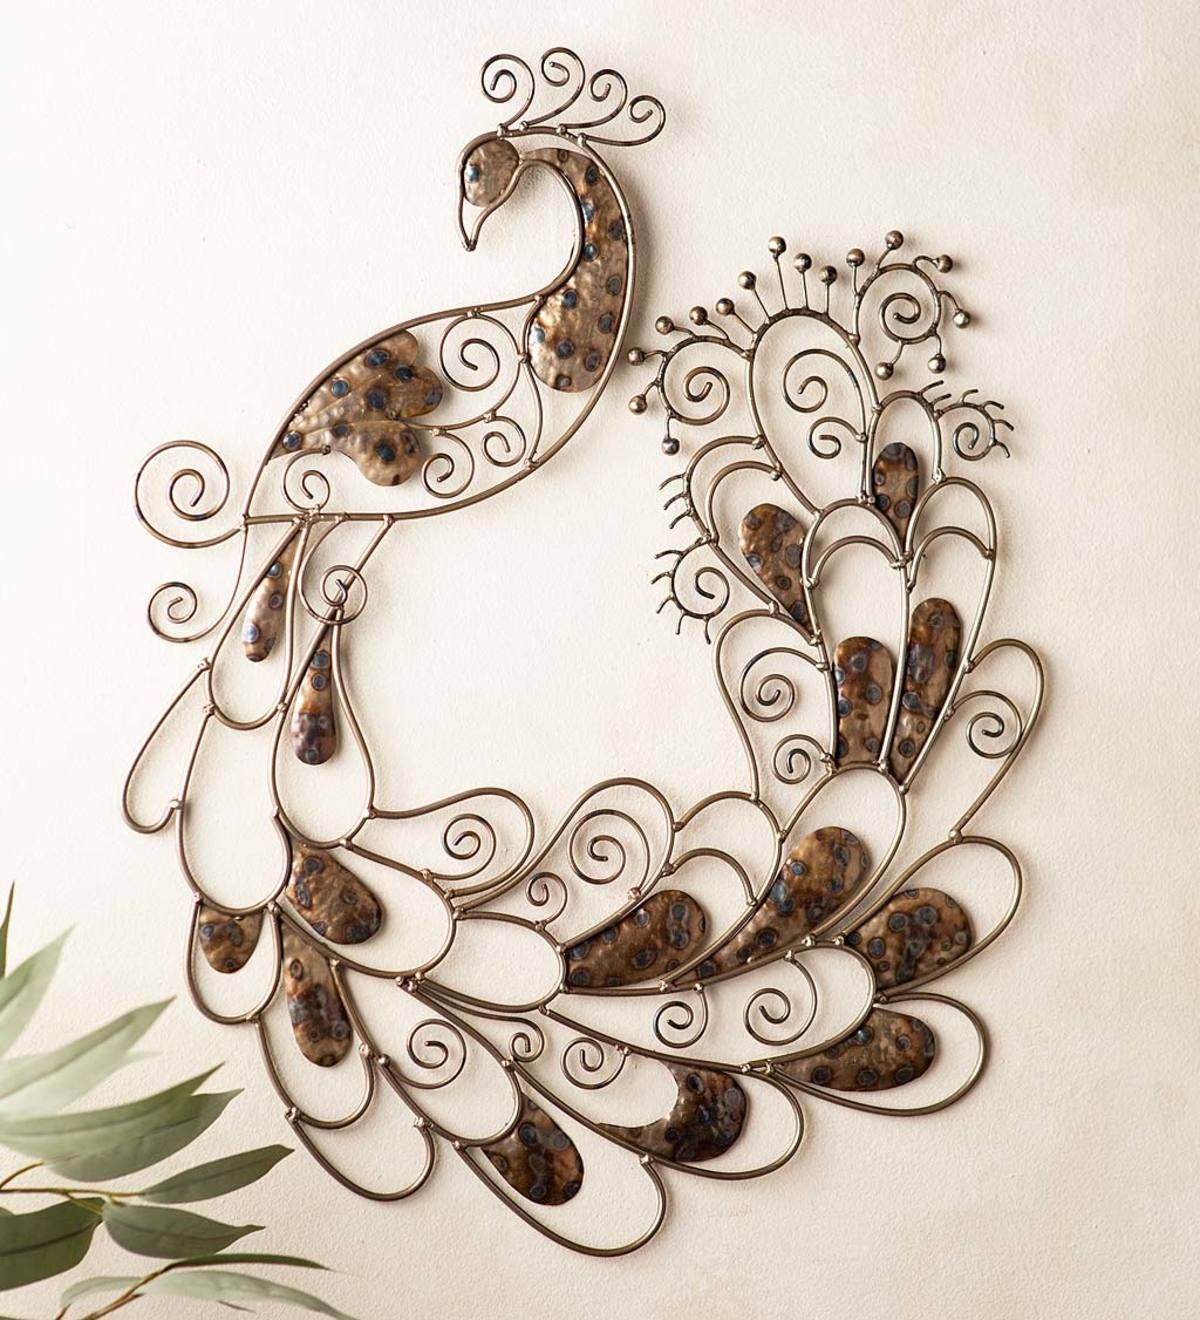 Handcrafted Metal Flame-Treated Peacock Indoor/Outdoor Wall Art